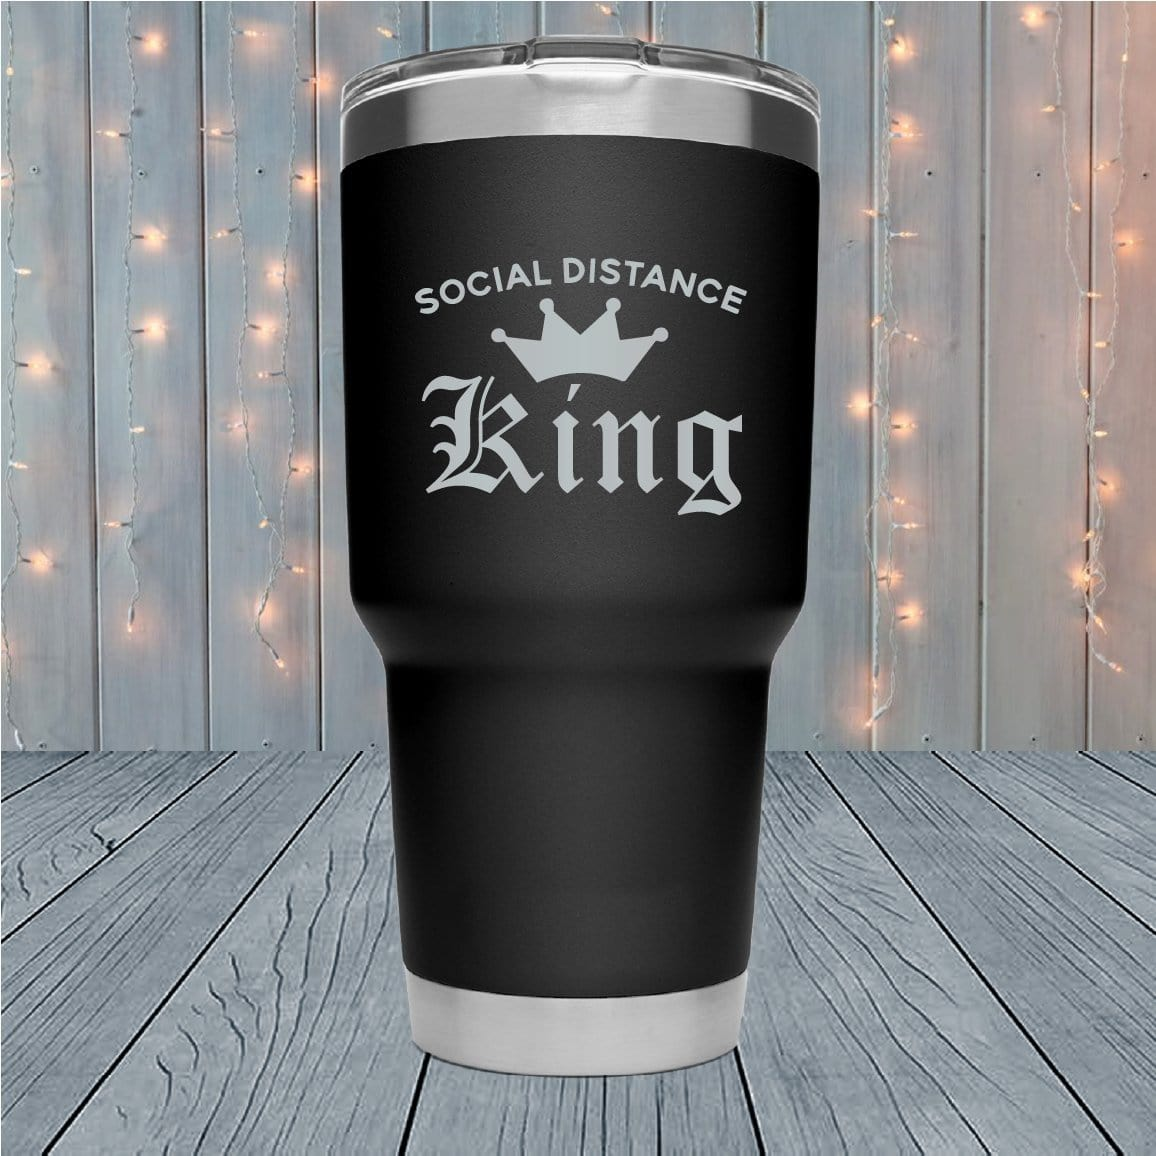 Social Distance King Laser Engraved Tumblers